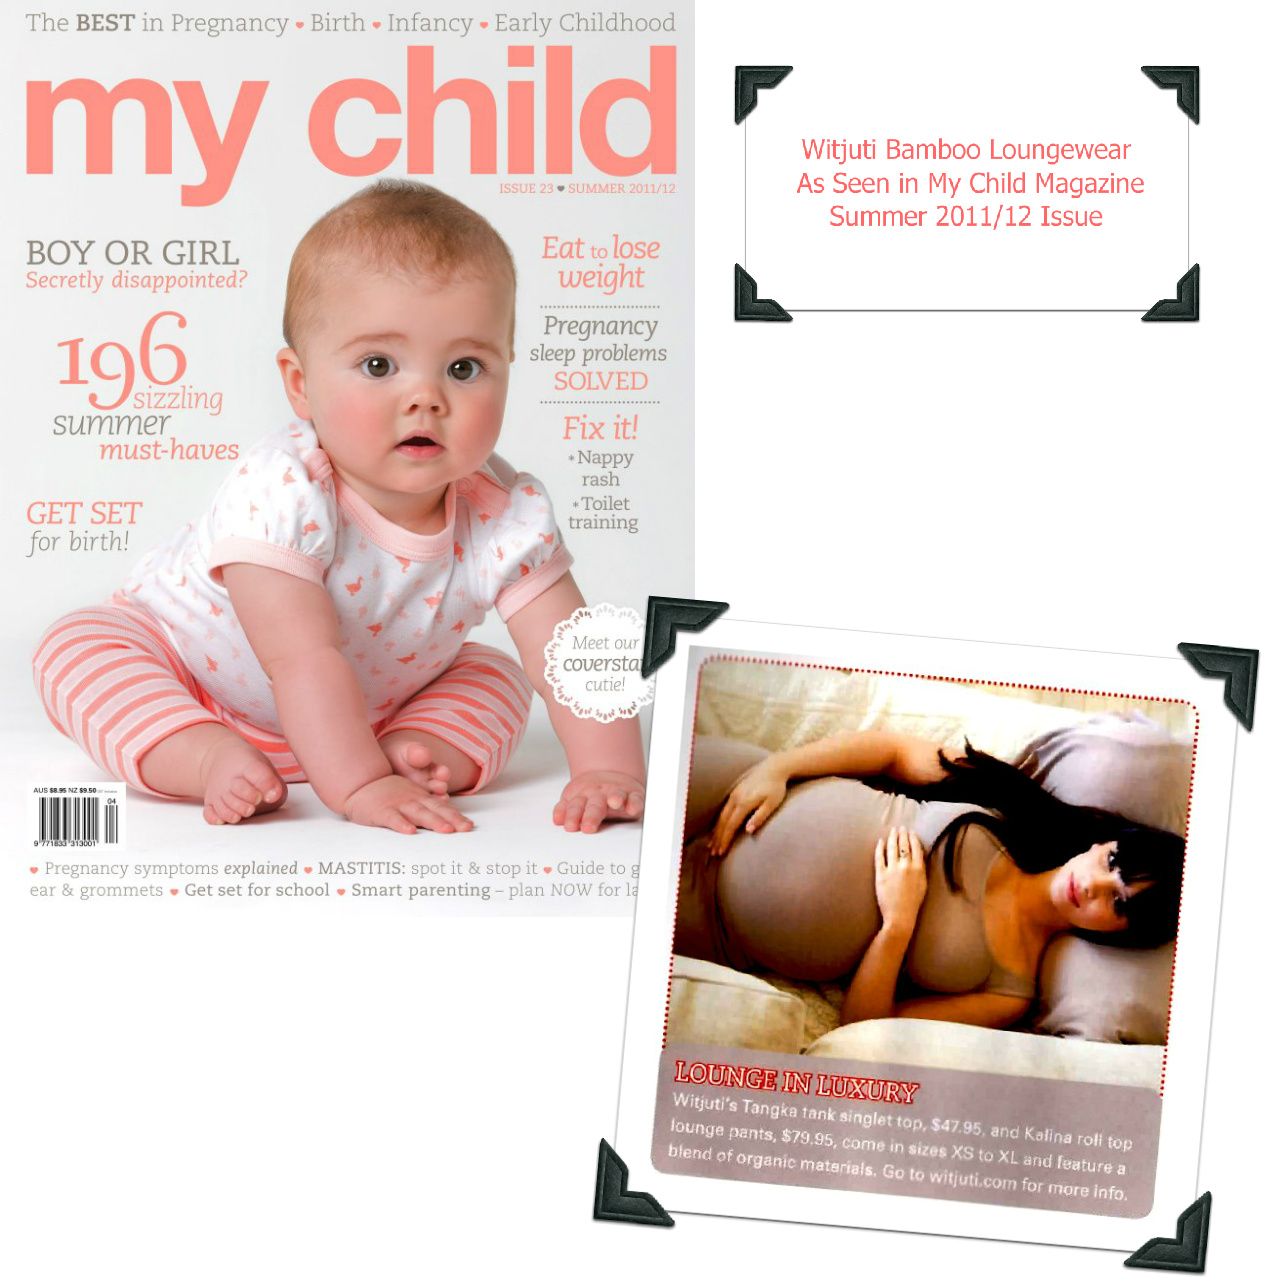 my-child-magazine-summer-2011-12-issue.jpg